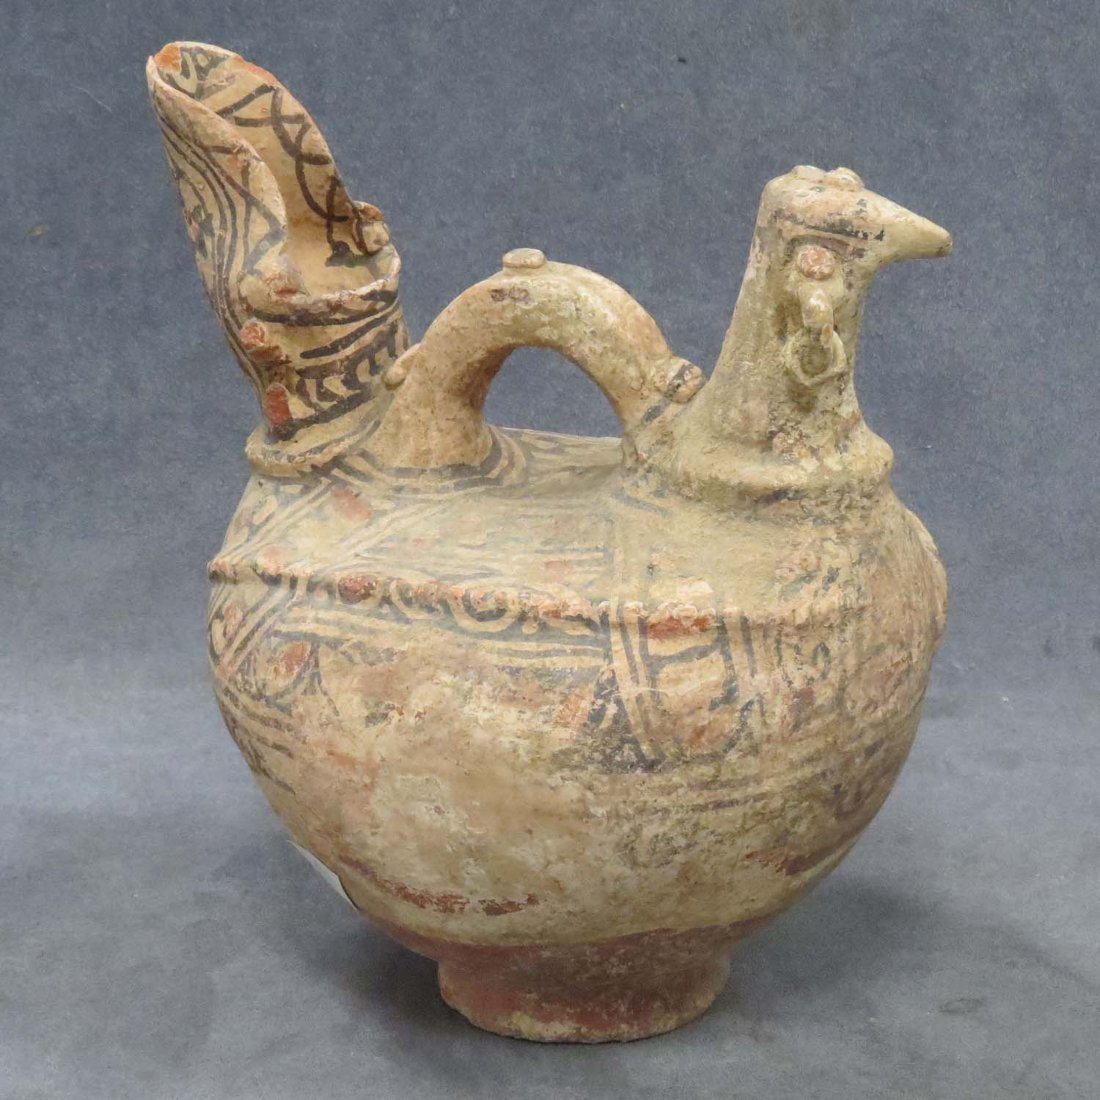 ANCIENT ZOOMORPHIC DECORATED POTTERY VESSEL